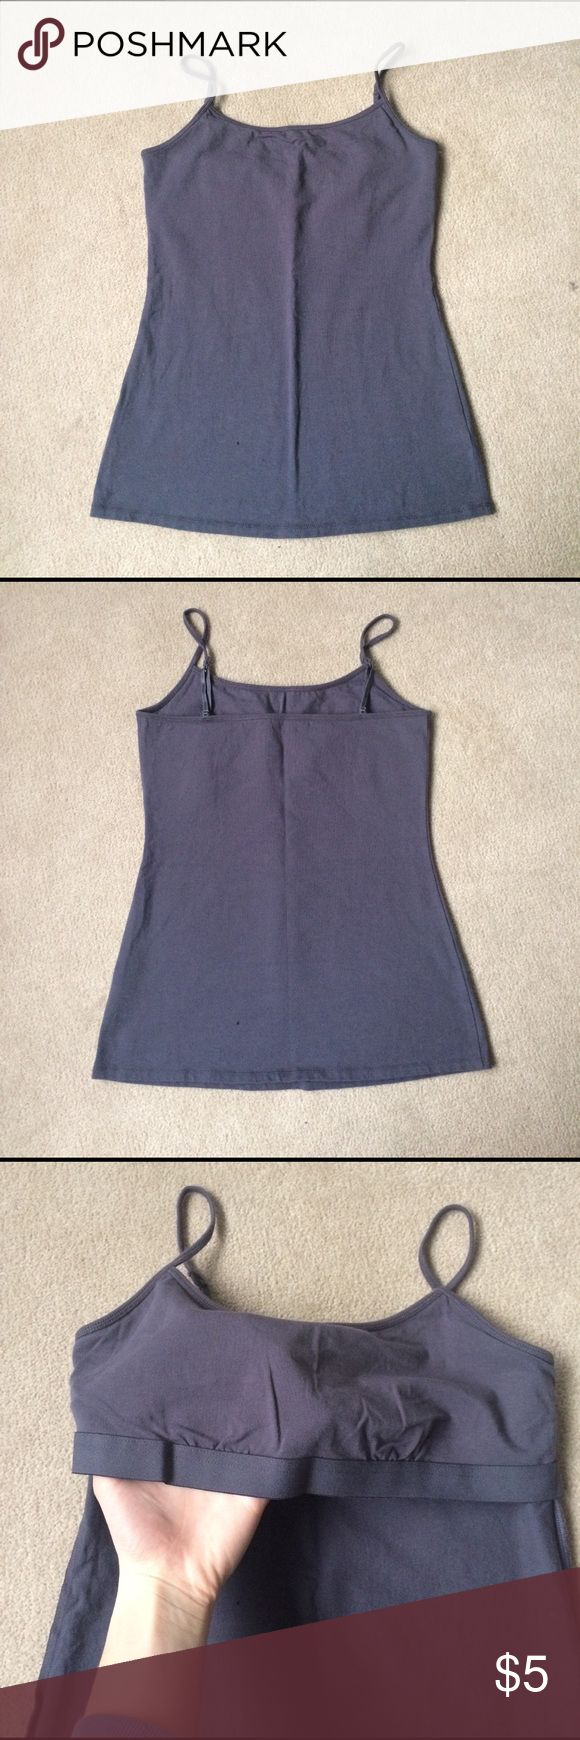 Cami Grey Cami from Maurice's. Never worn. Feel free to make an offer! Maurices Tops Camisoles